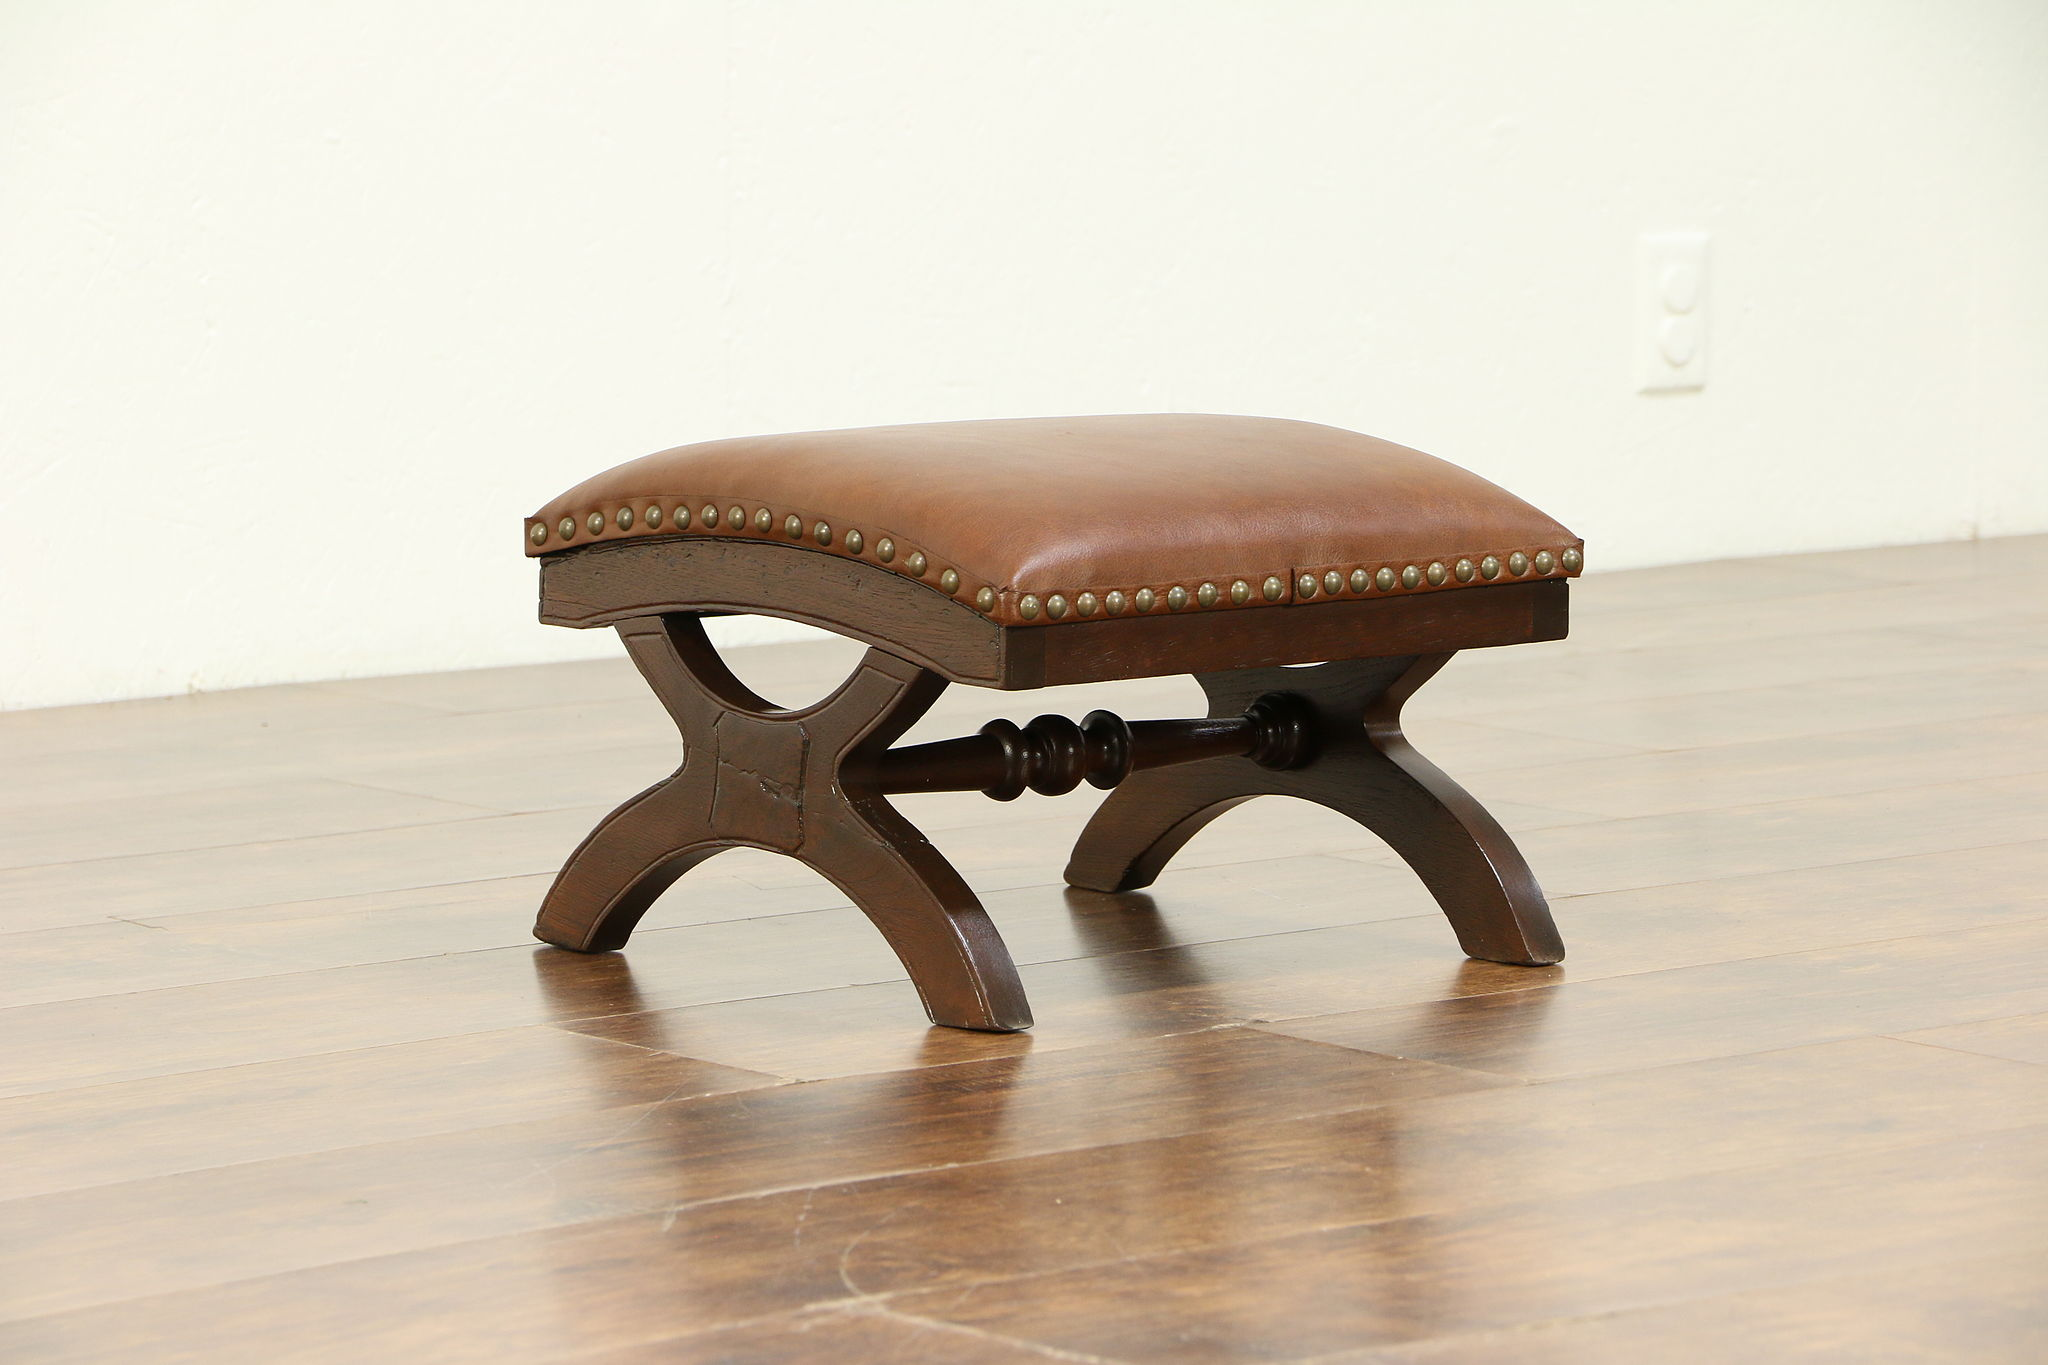 Marvelous Victorian Antique 1880 Walnut Foot Stool Leather Upholstery 30465 Ibusinesslaw Wood Chair Design Ideas Ibusinesslaworg